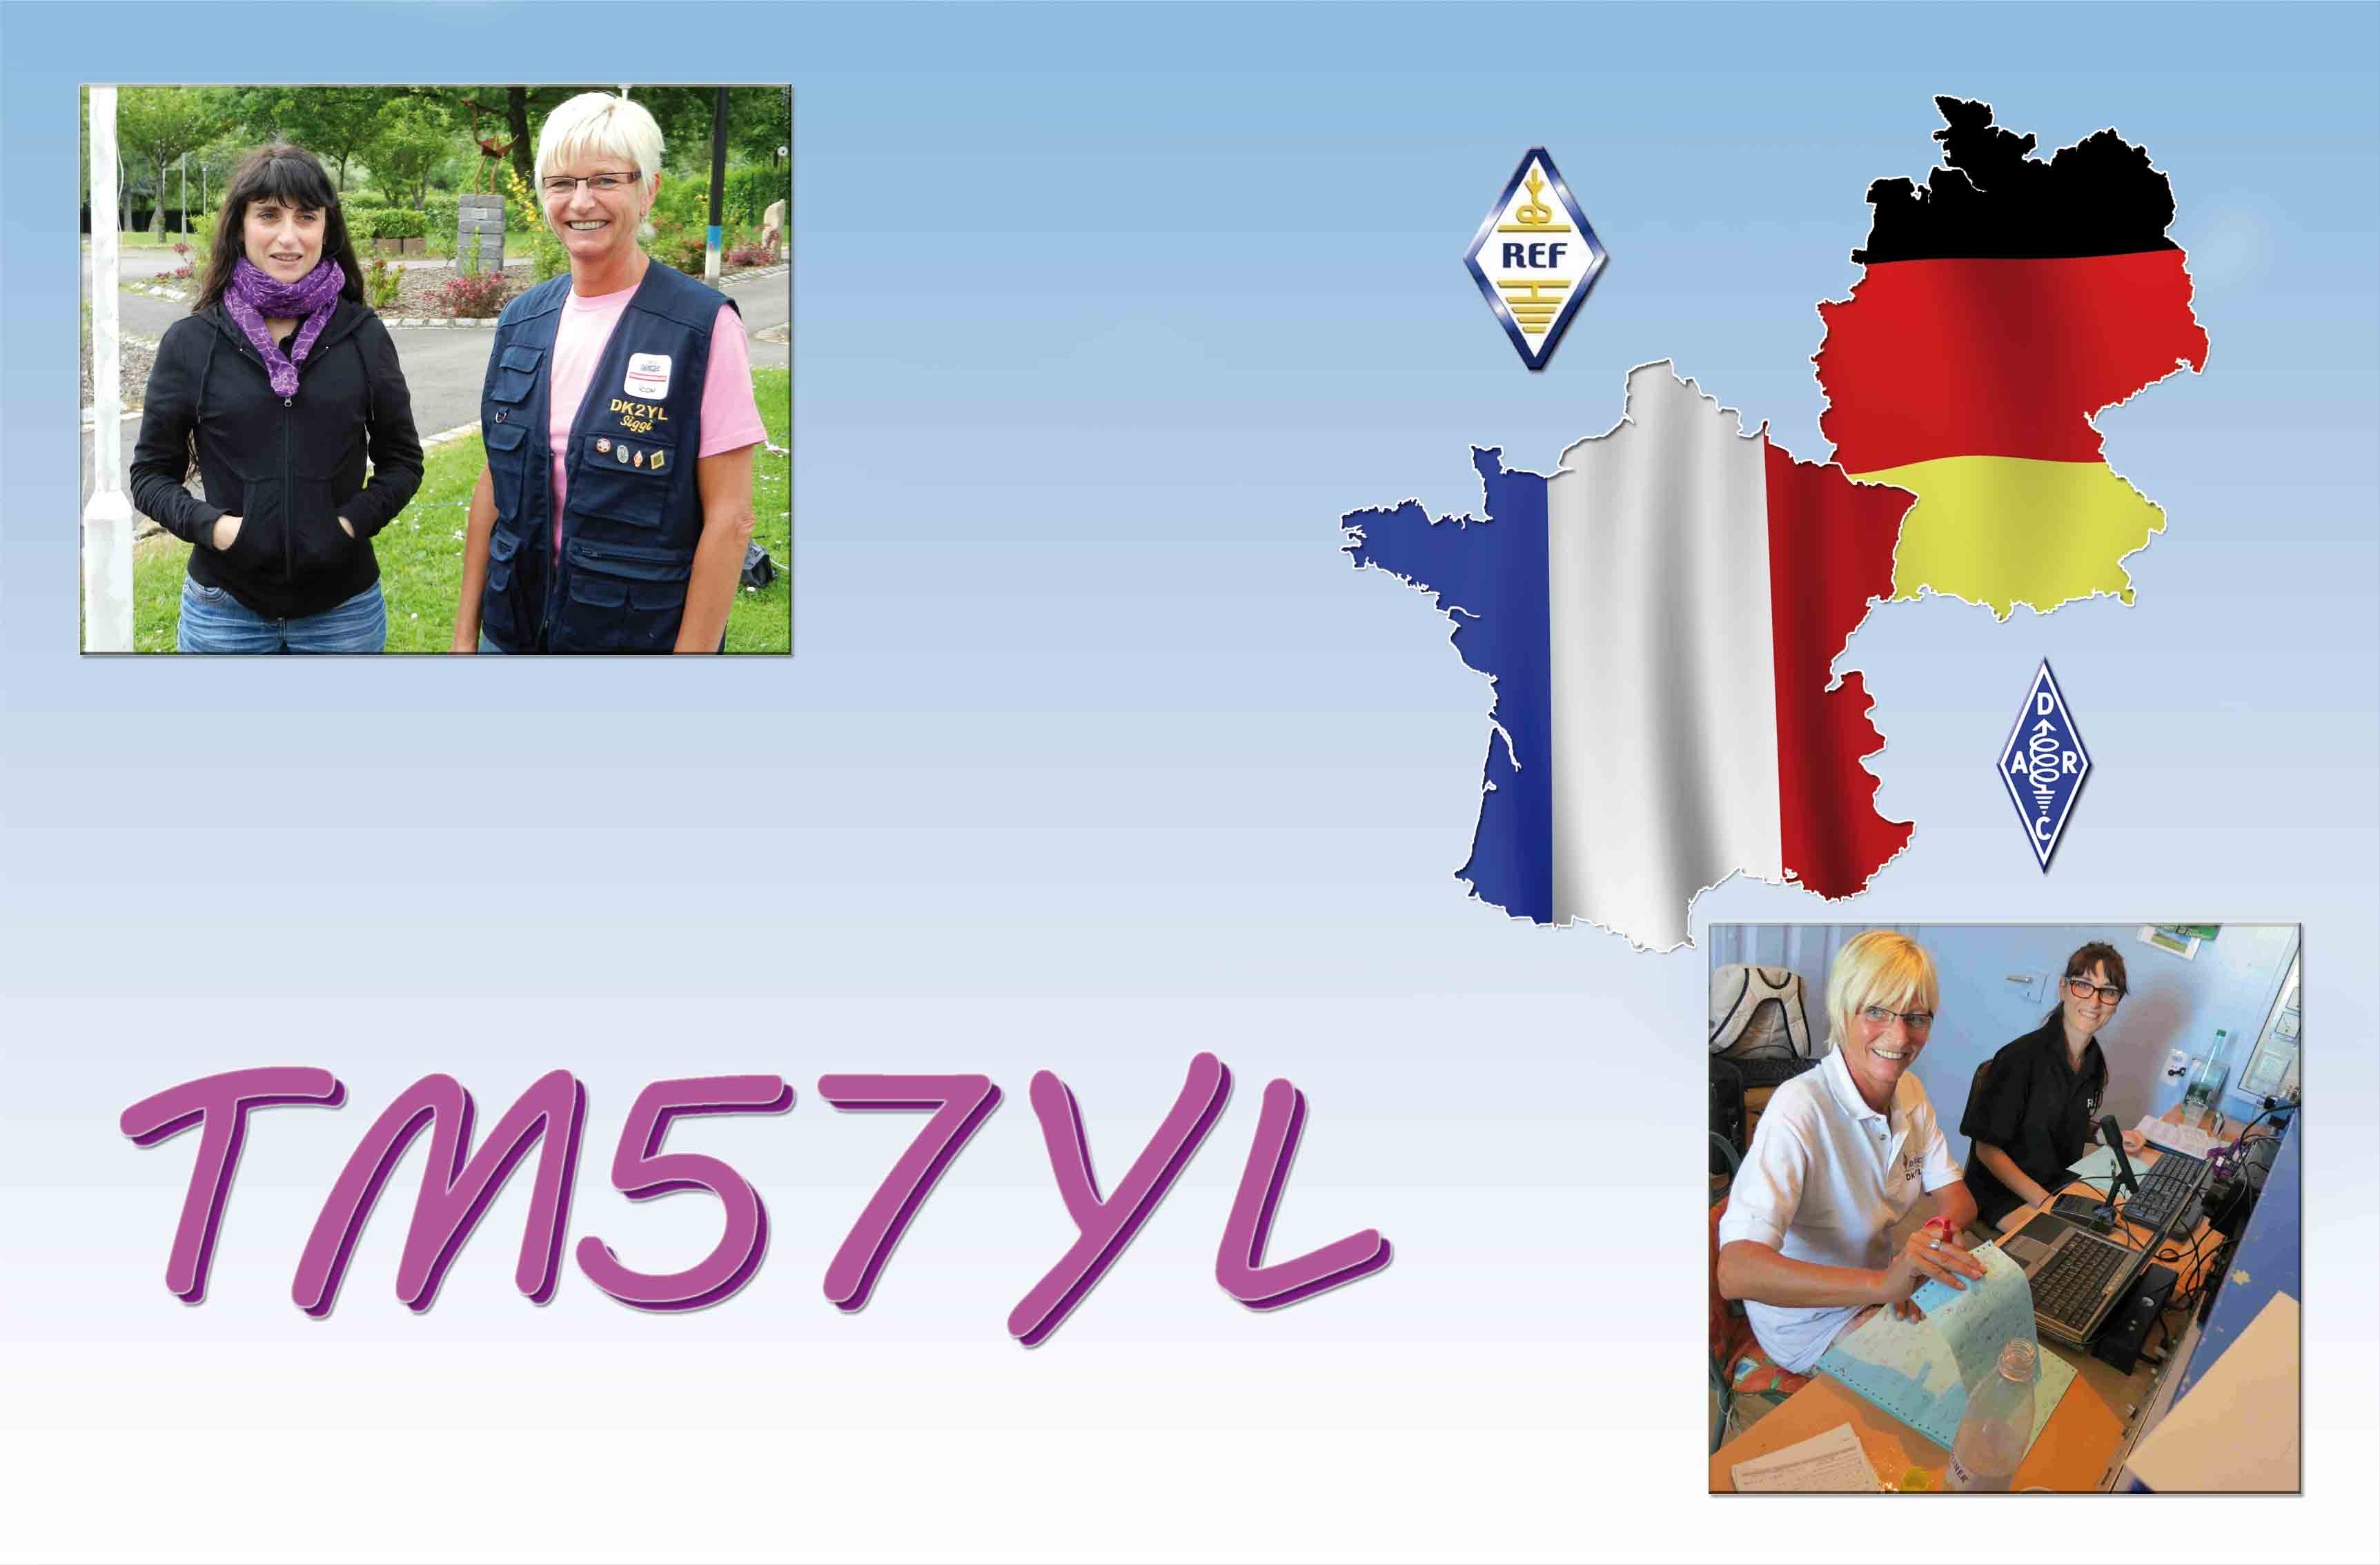 QSL image for TM57YL